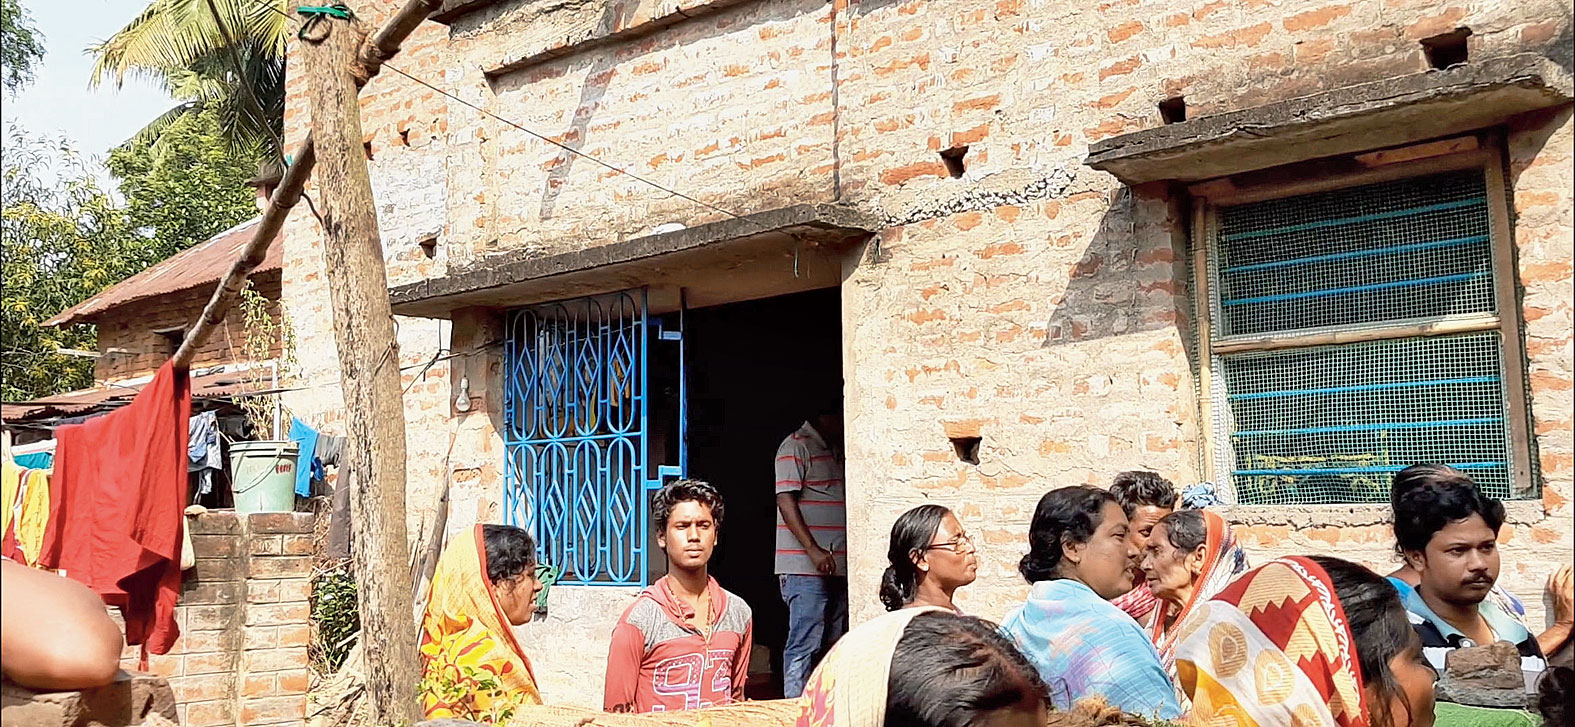 Villagers assemble in front of the house of the youth who committed suicide.